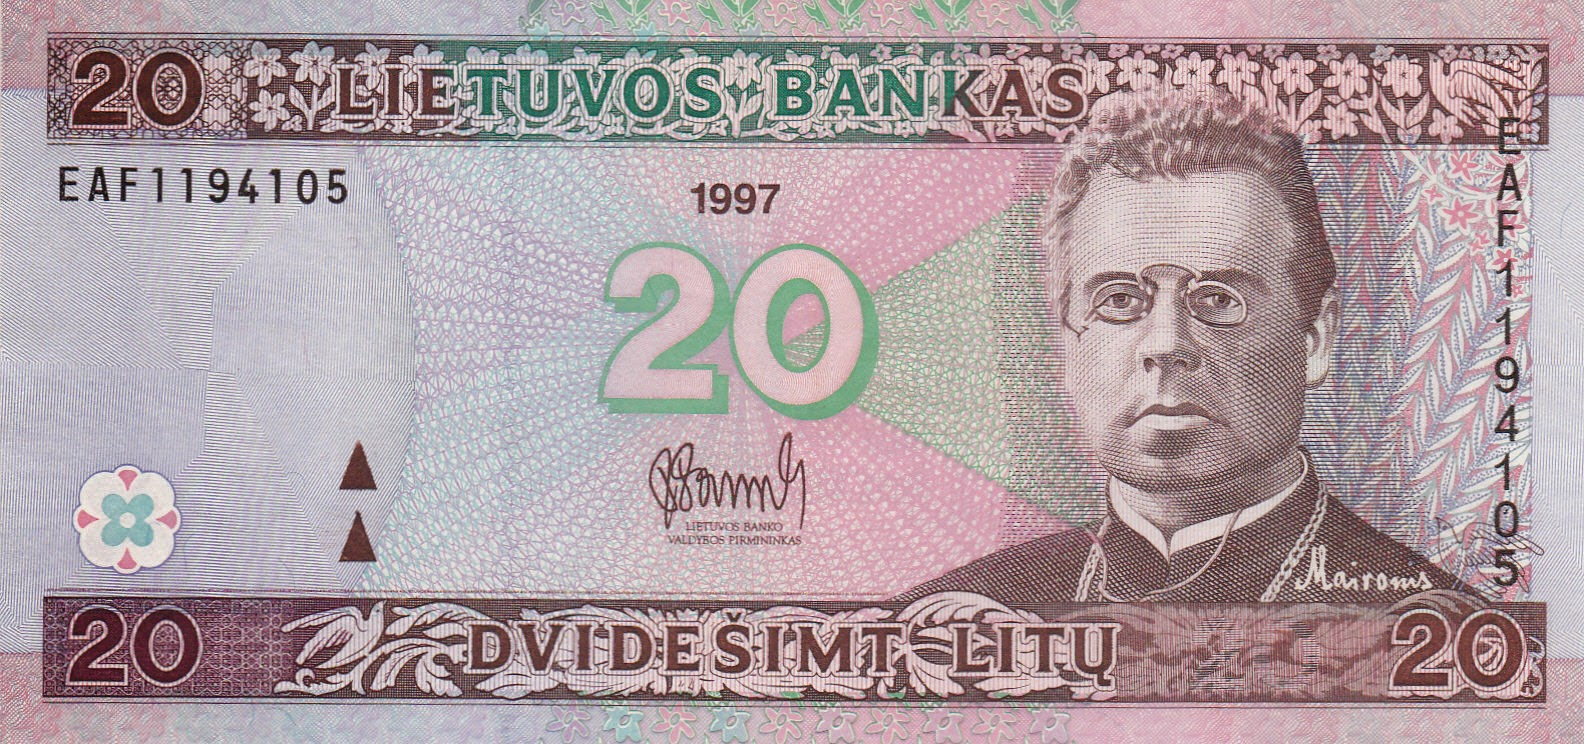 Banknotes of Lithuania 20 Litu banknote 1997 Maironis